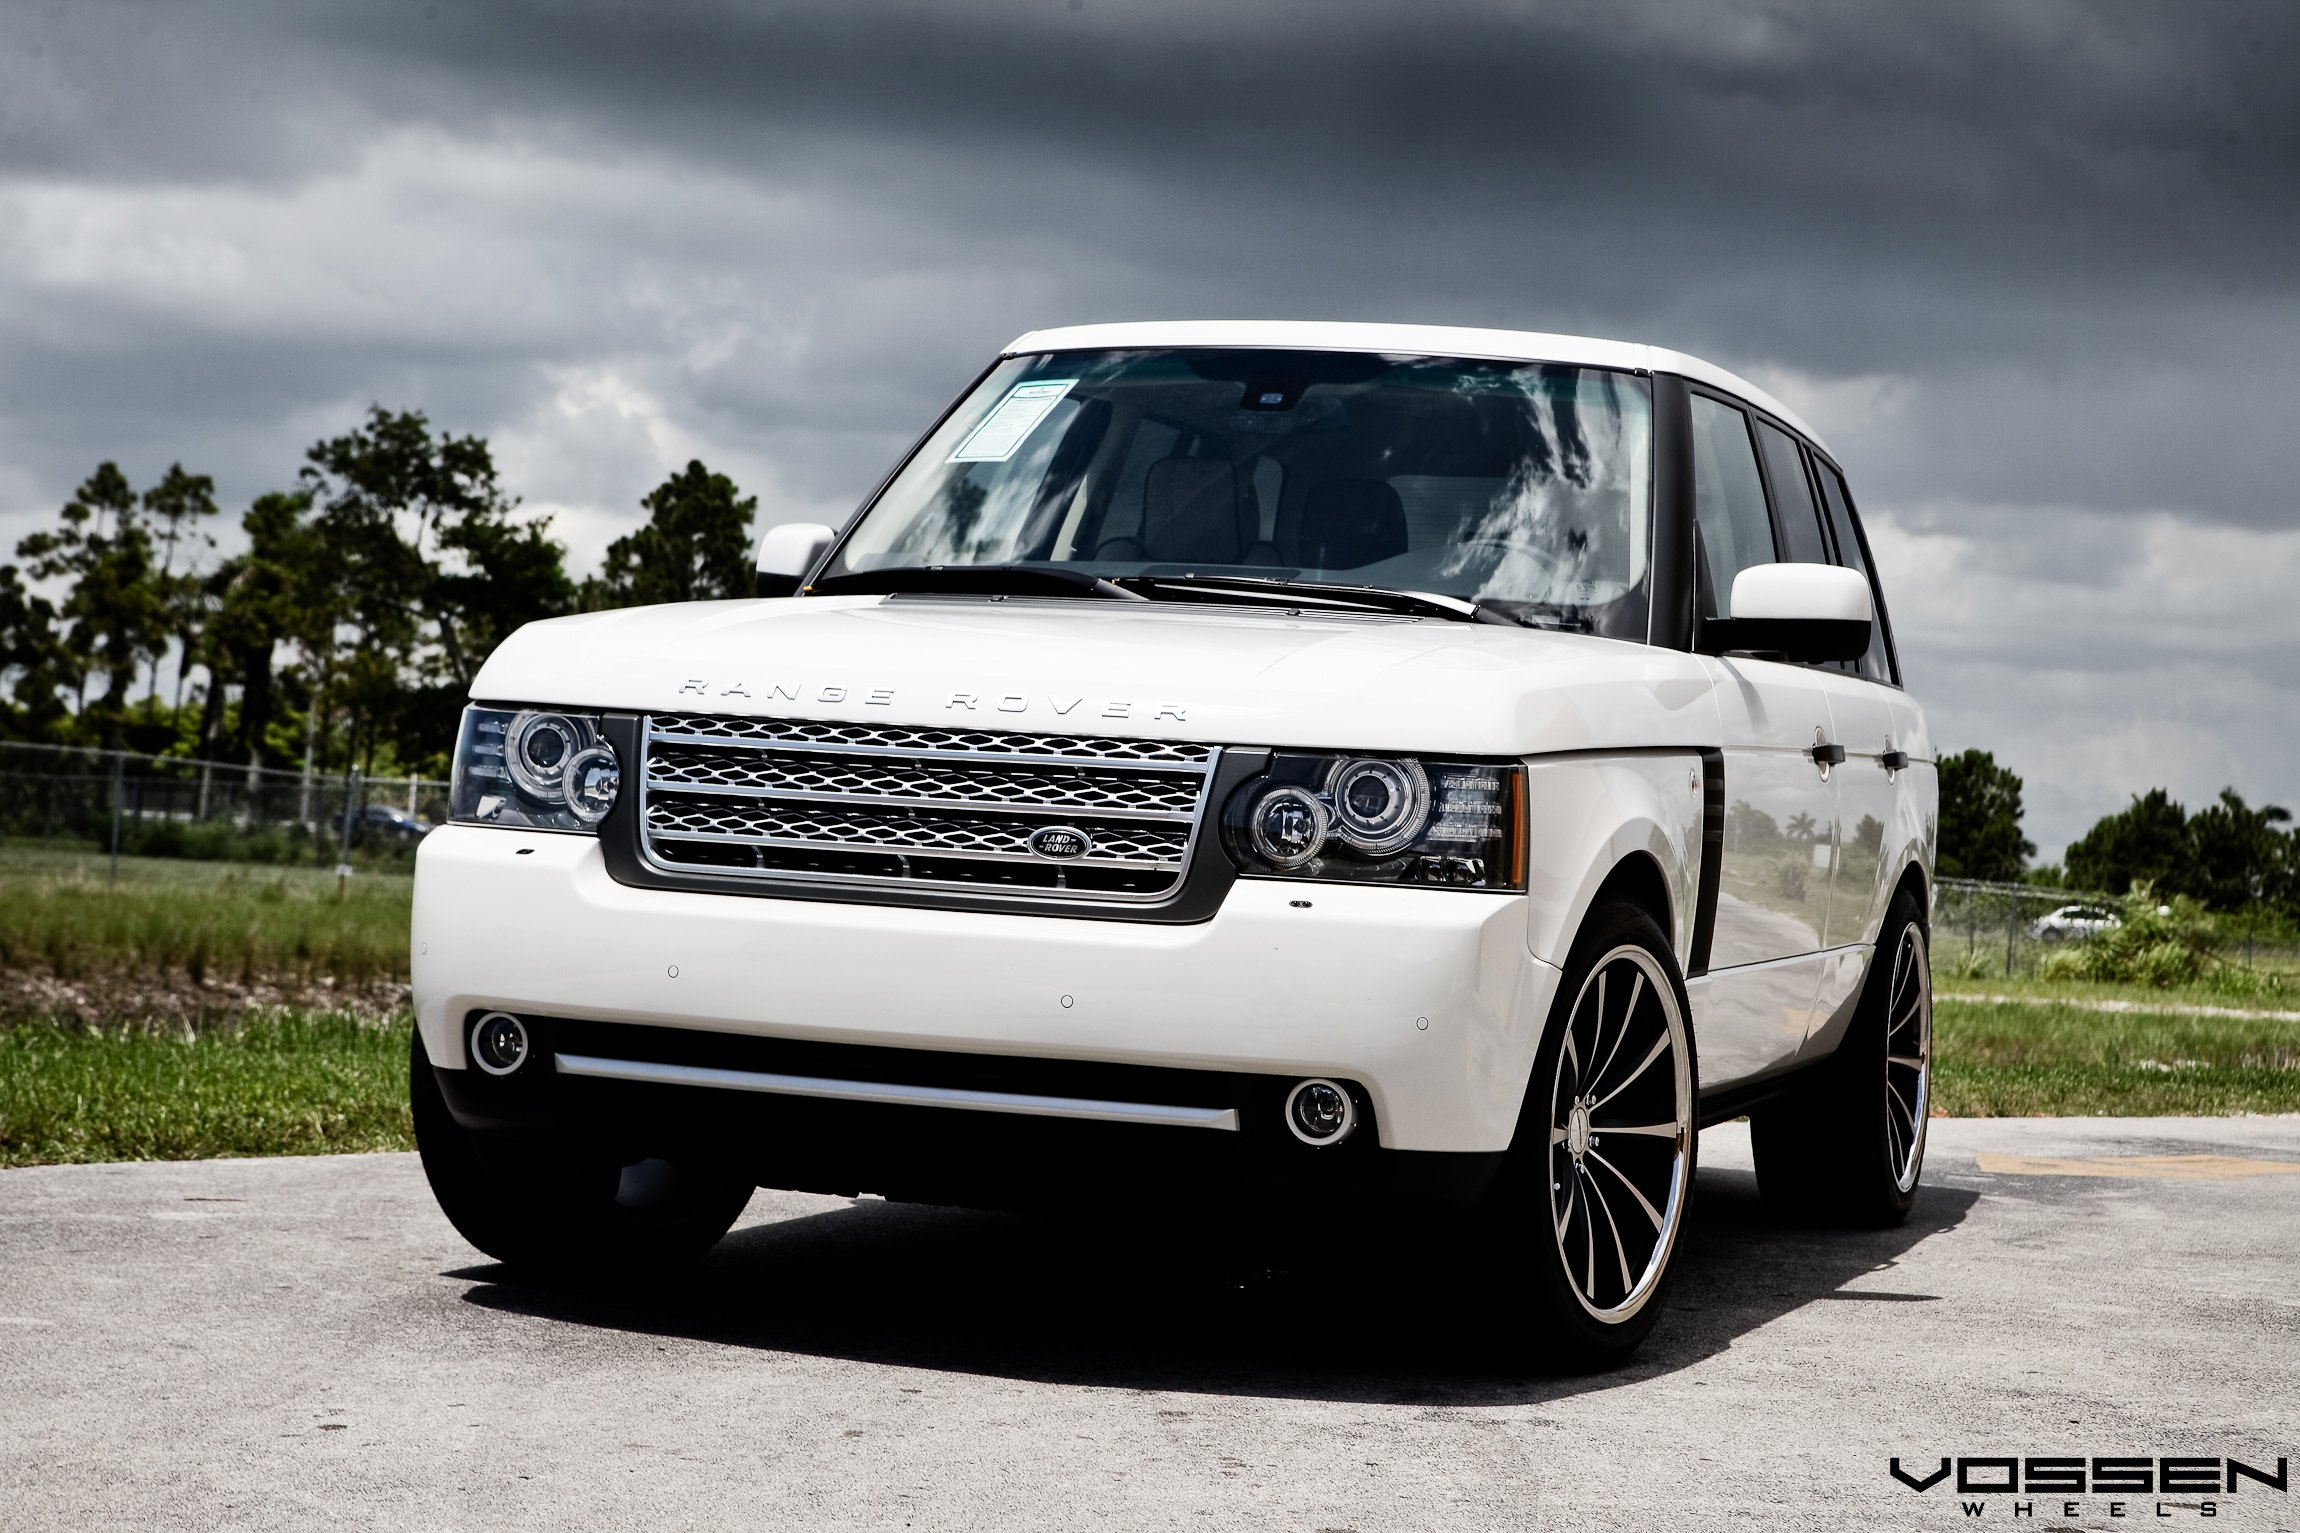 Eye catching White Range Rover Boasting a Set of Classy Rims